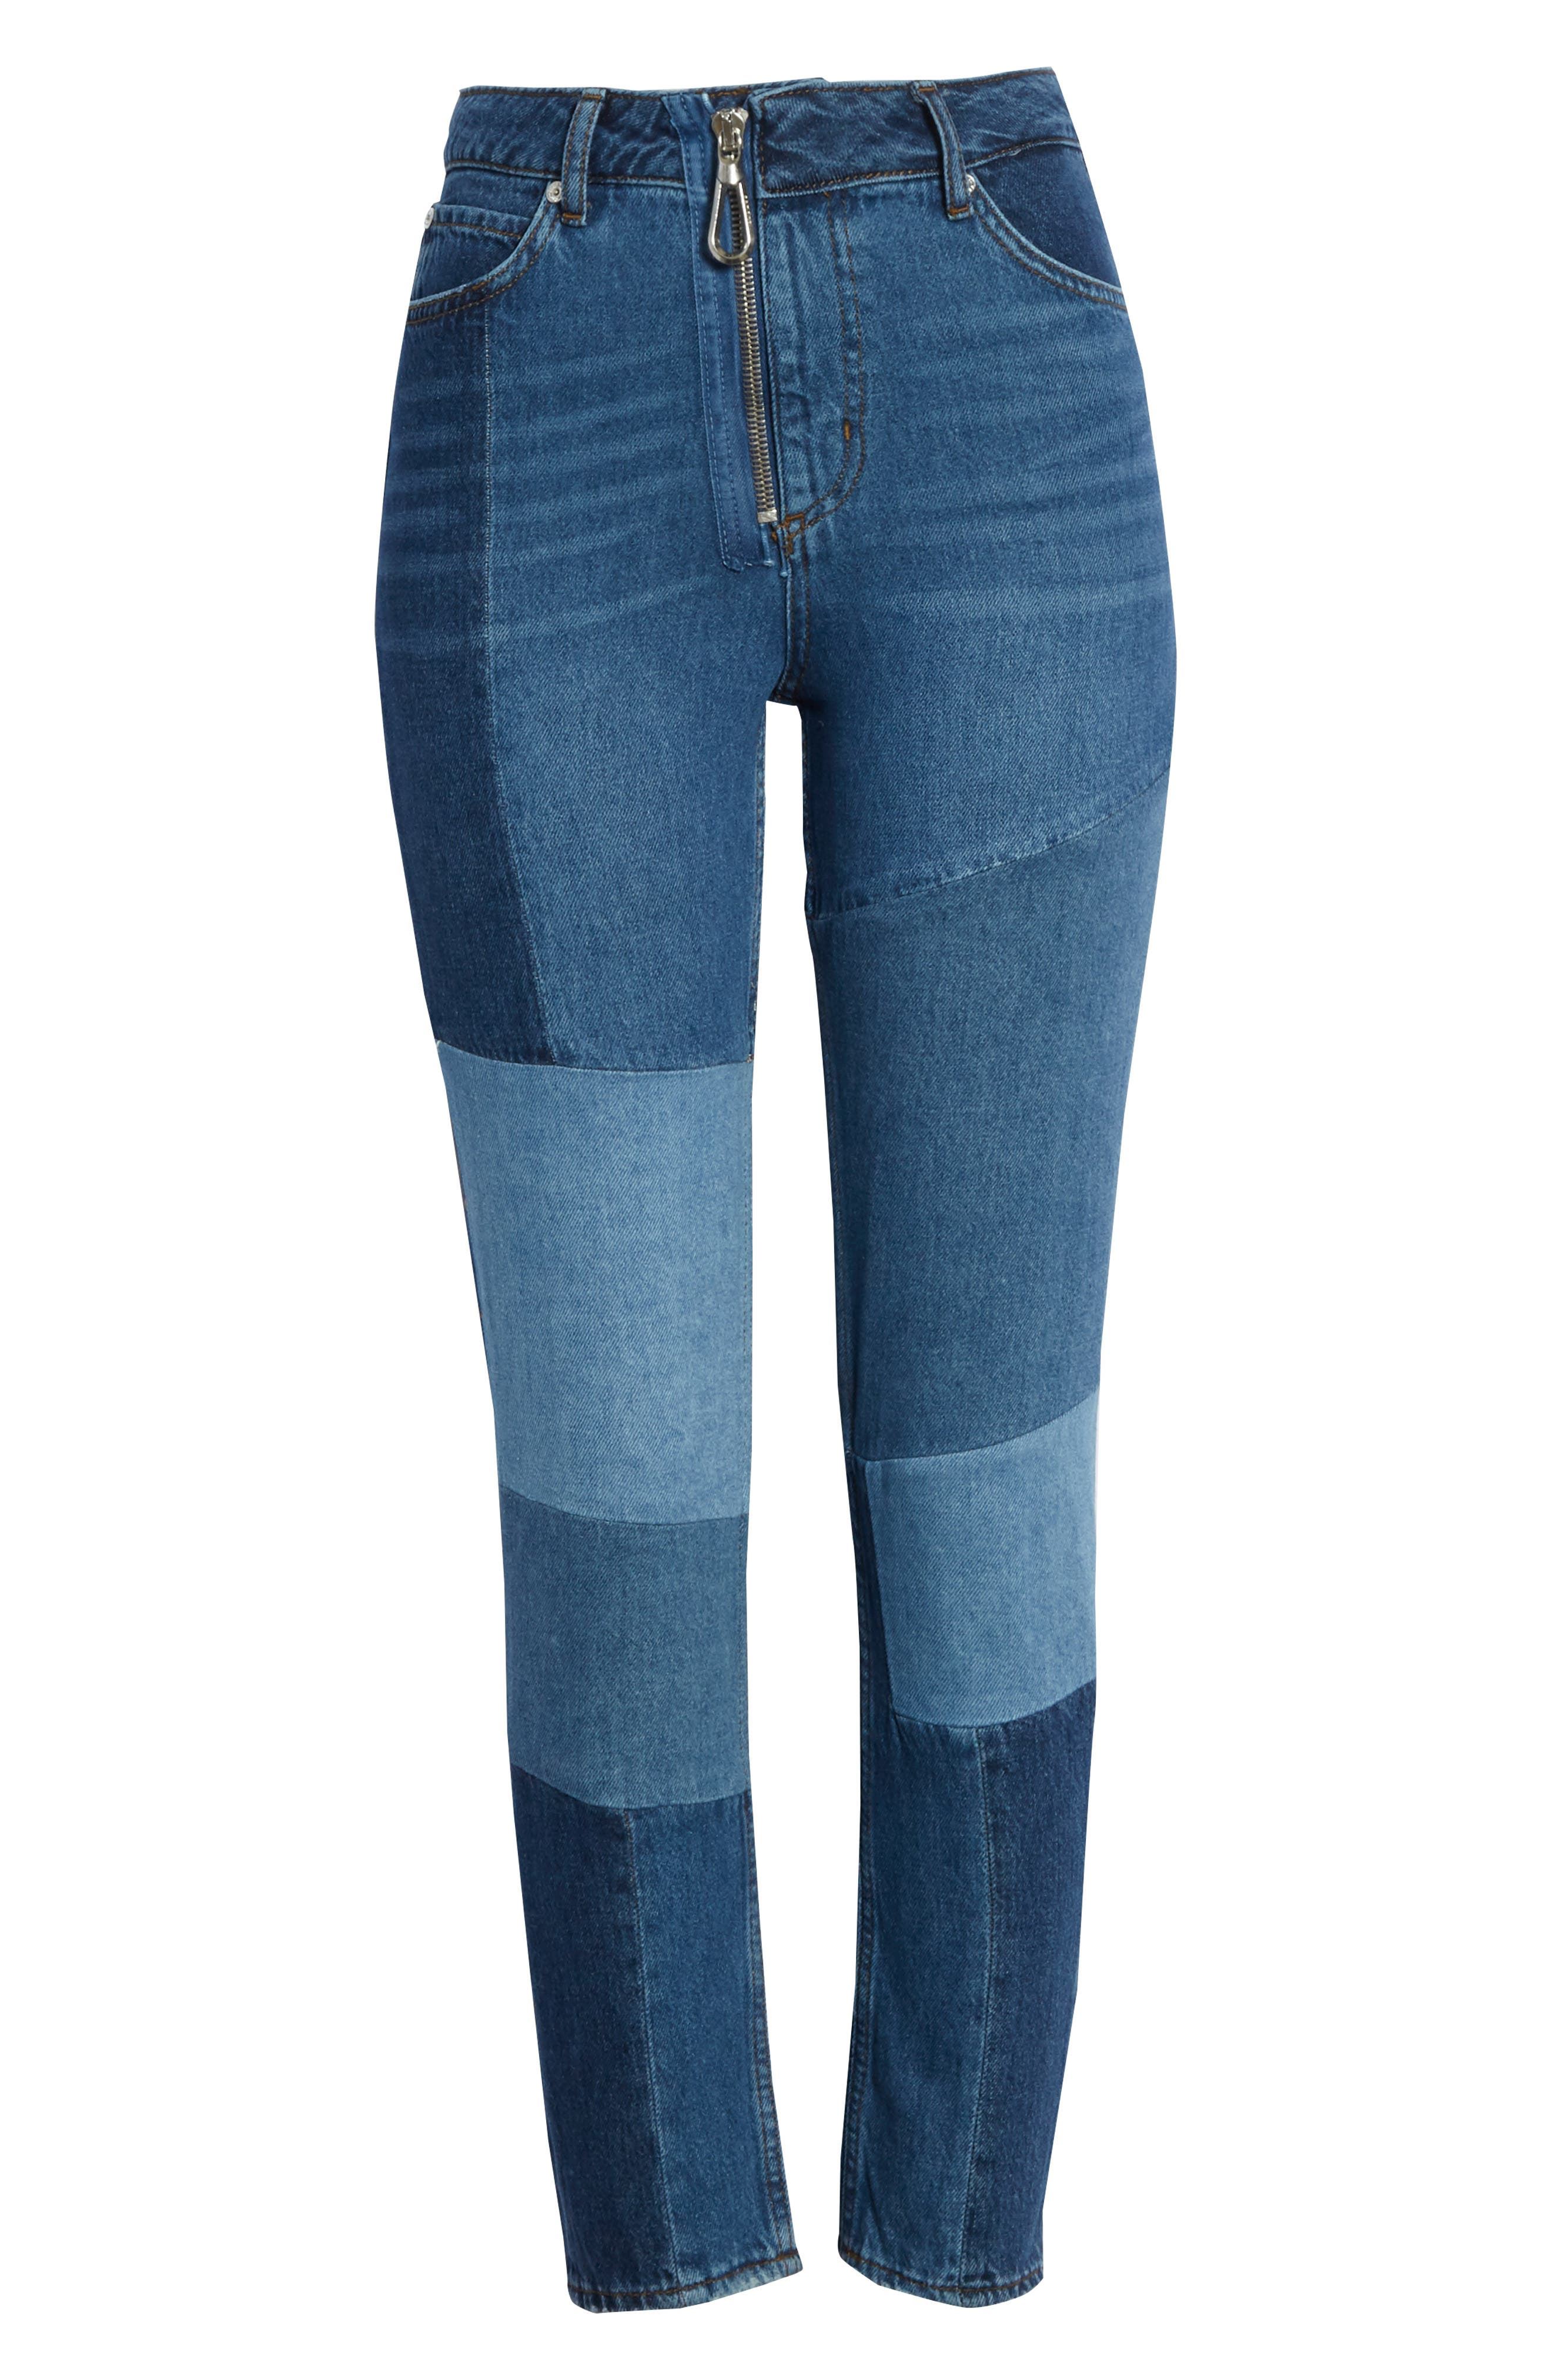 Patch Skinny Jeans,                             Alternate thumbnail 6, color,                             Blue